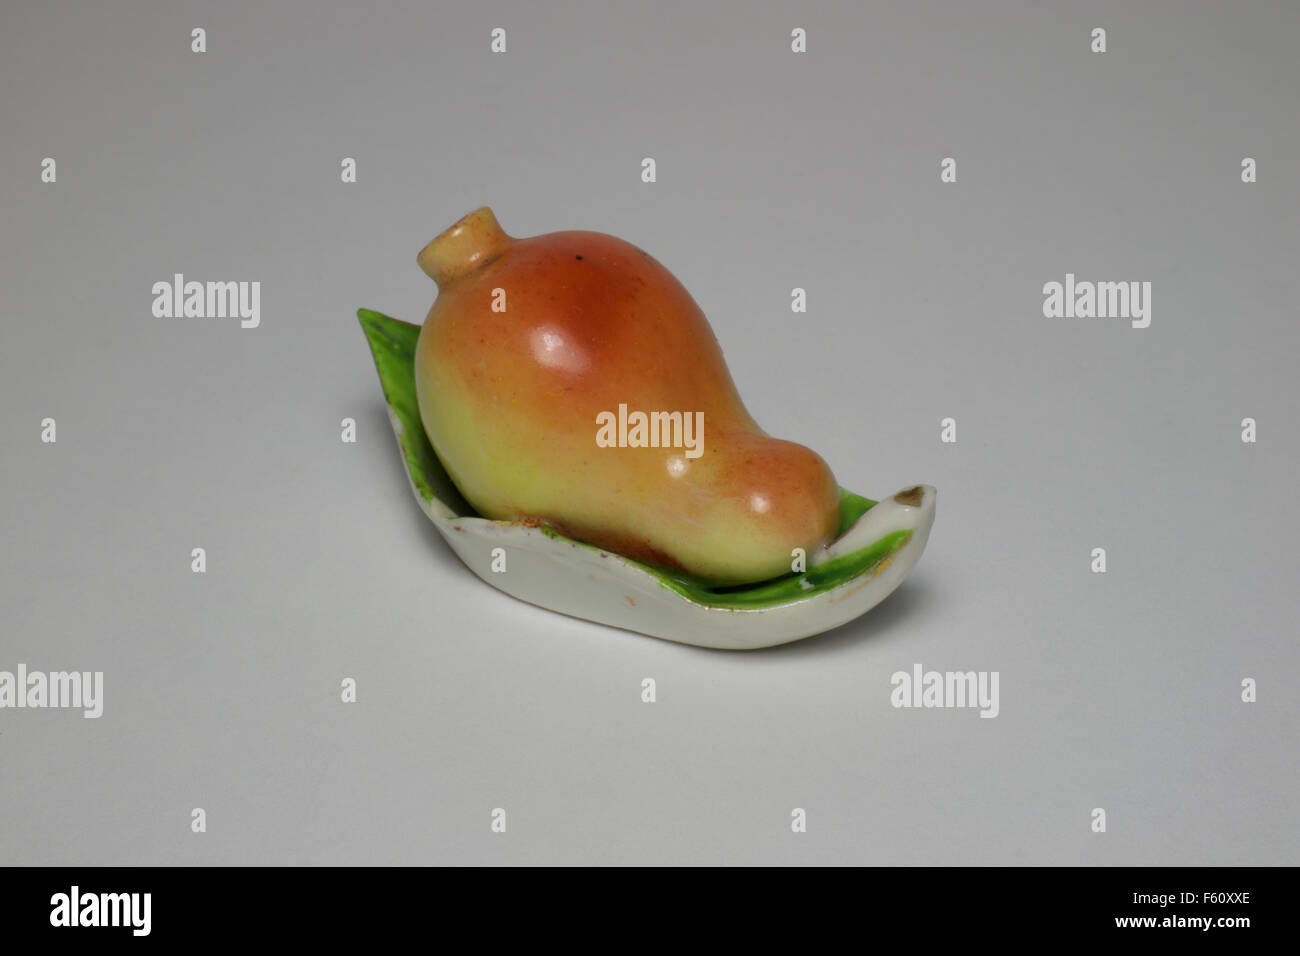 Porcelain perfume bottle in the form of a pear resting on a leaf. - Stock Image